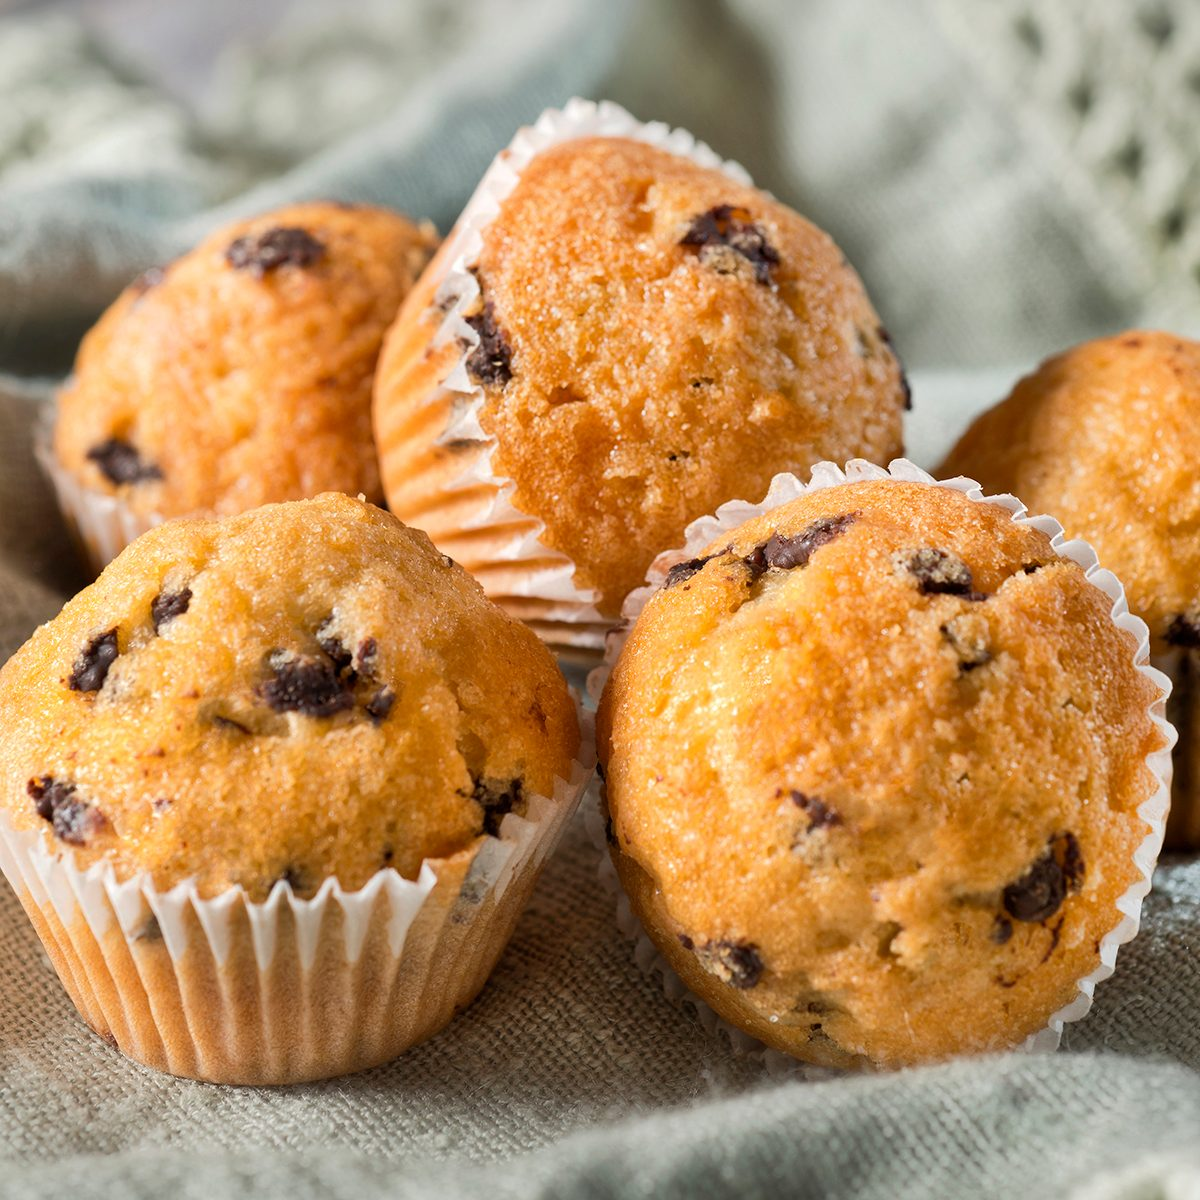 Several muffins with chocolate chips on a linen tablecloth at breakfast